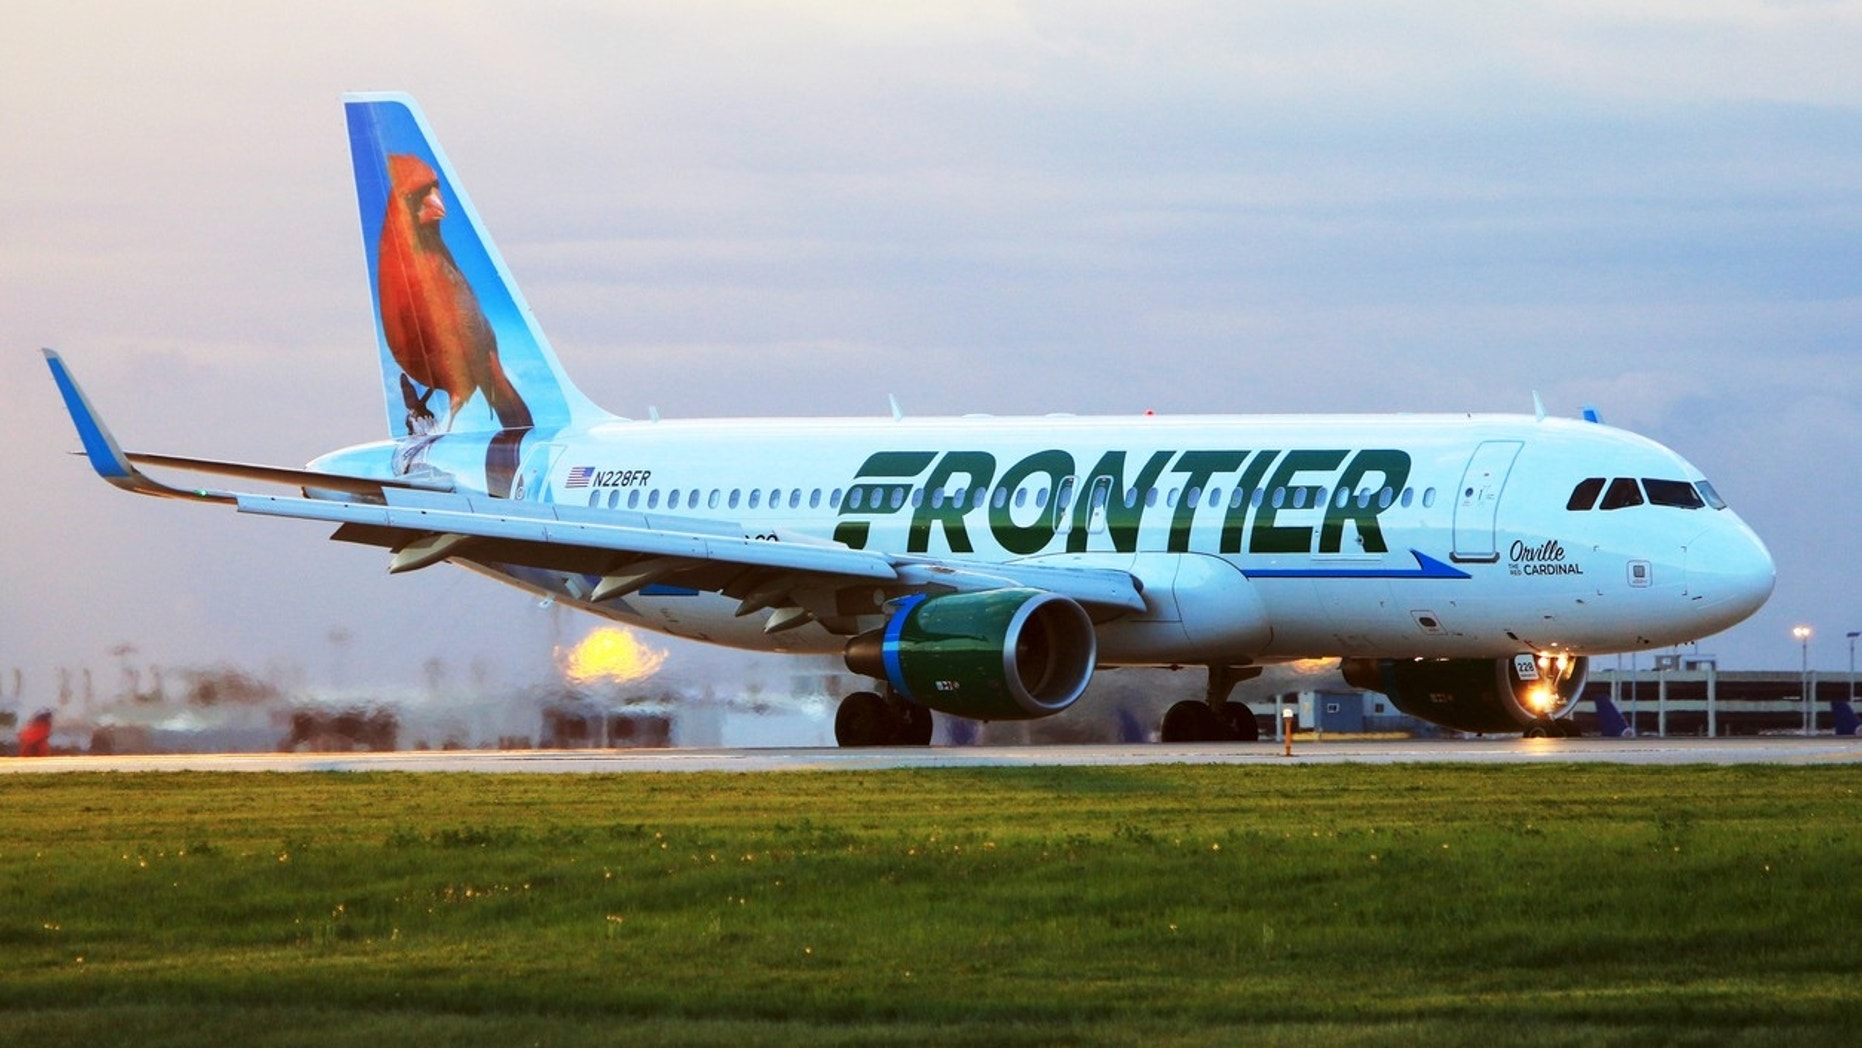 Stranded Frontier Passengers Offered $400 Vouchers That Allegedly Won't Arrive for 30 Days